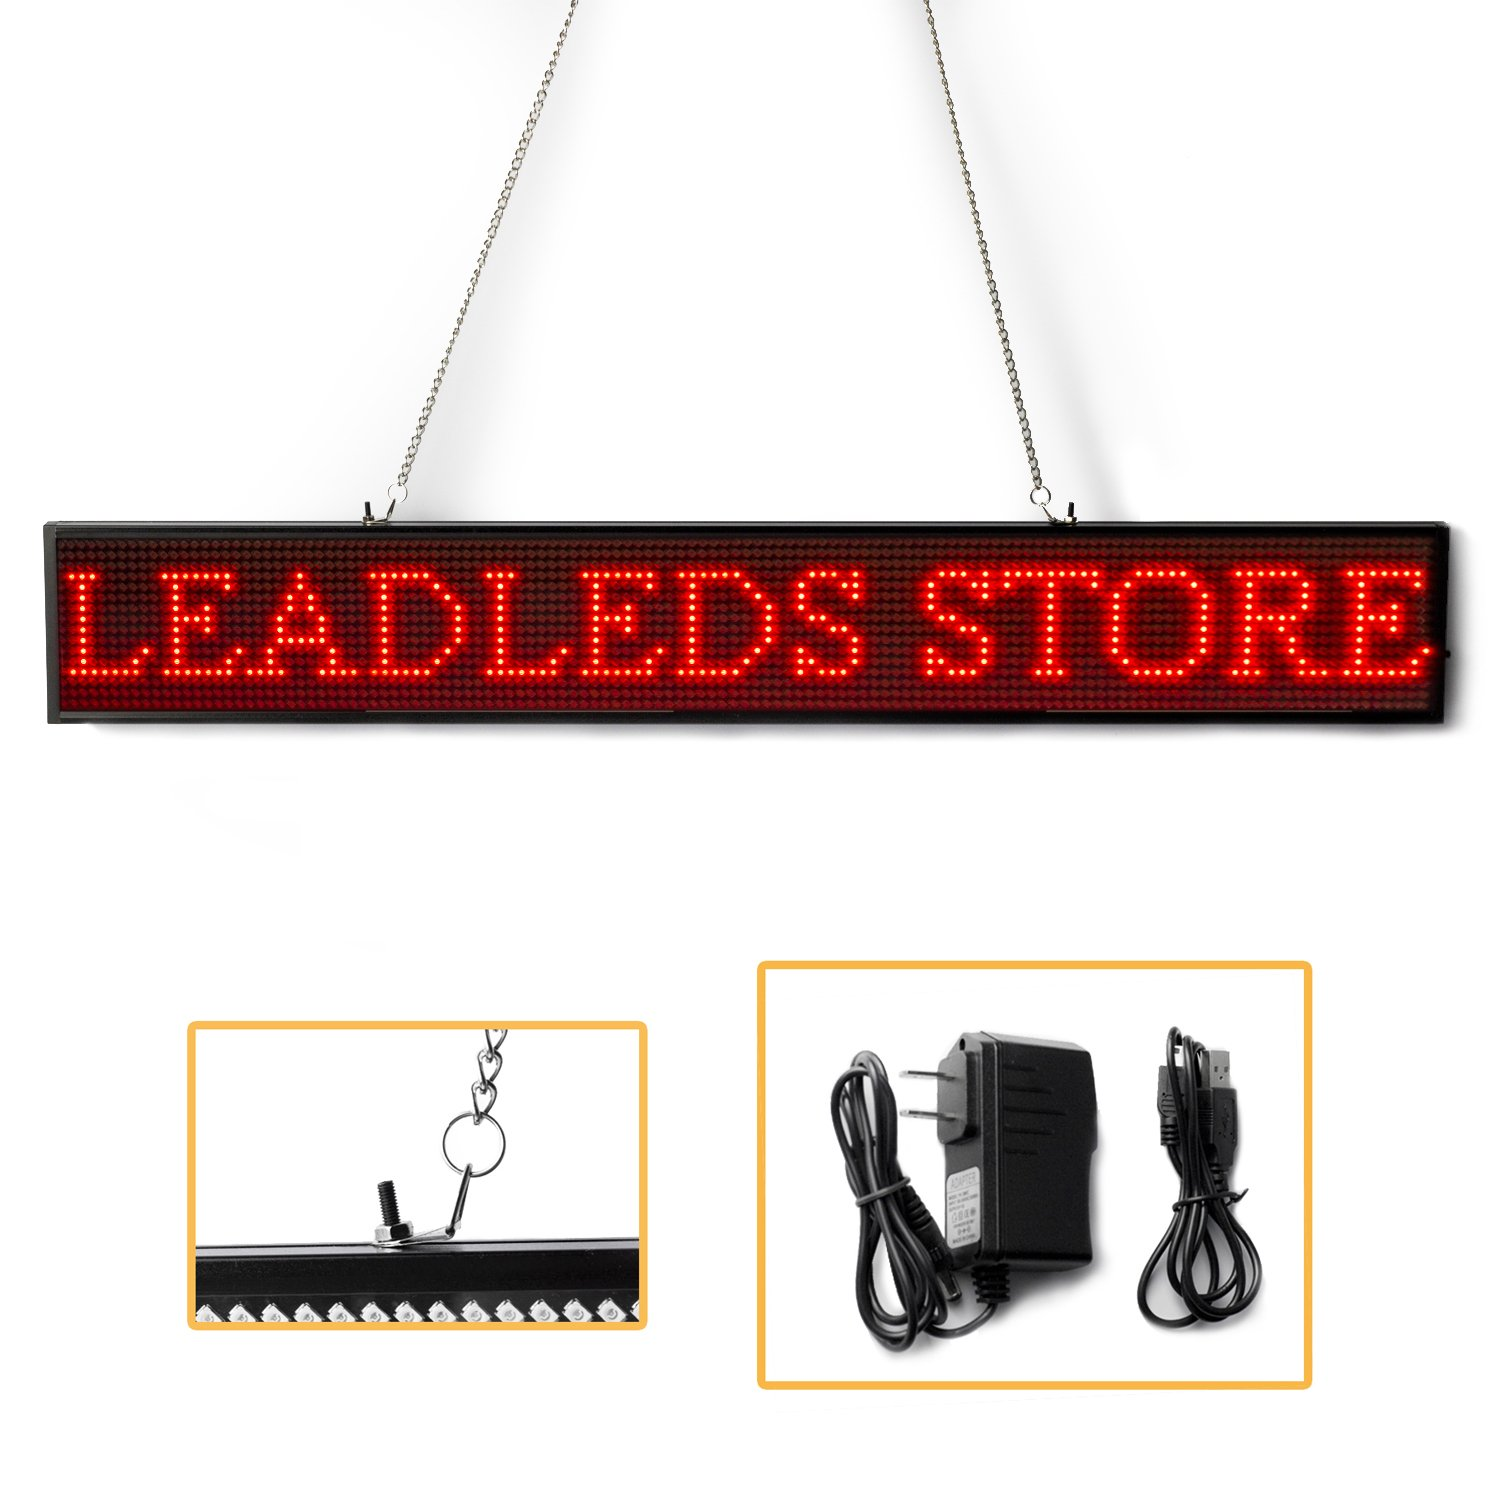 Leadleds P5 SMD Red LED Sign Board, WiFi and USB Programmable Scrolling Message Signs Open for Store, Bar, School, Business